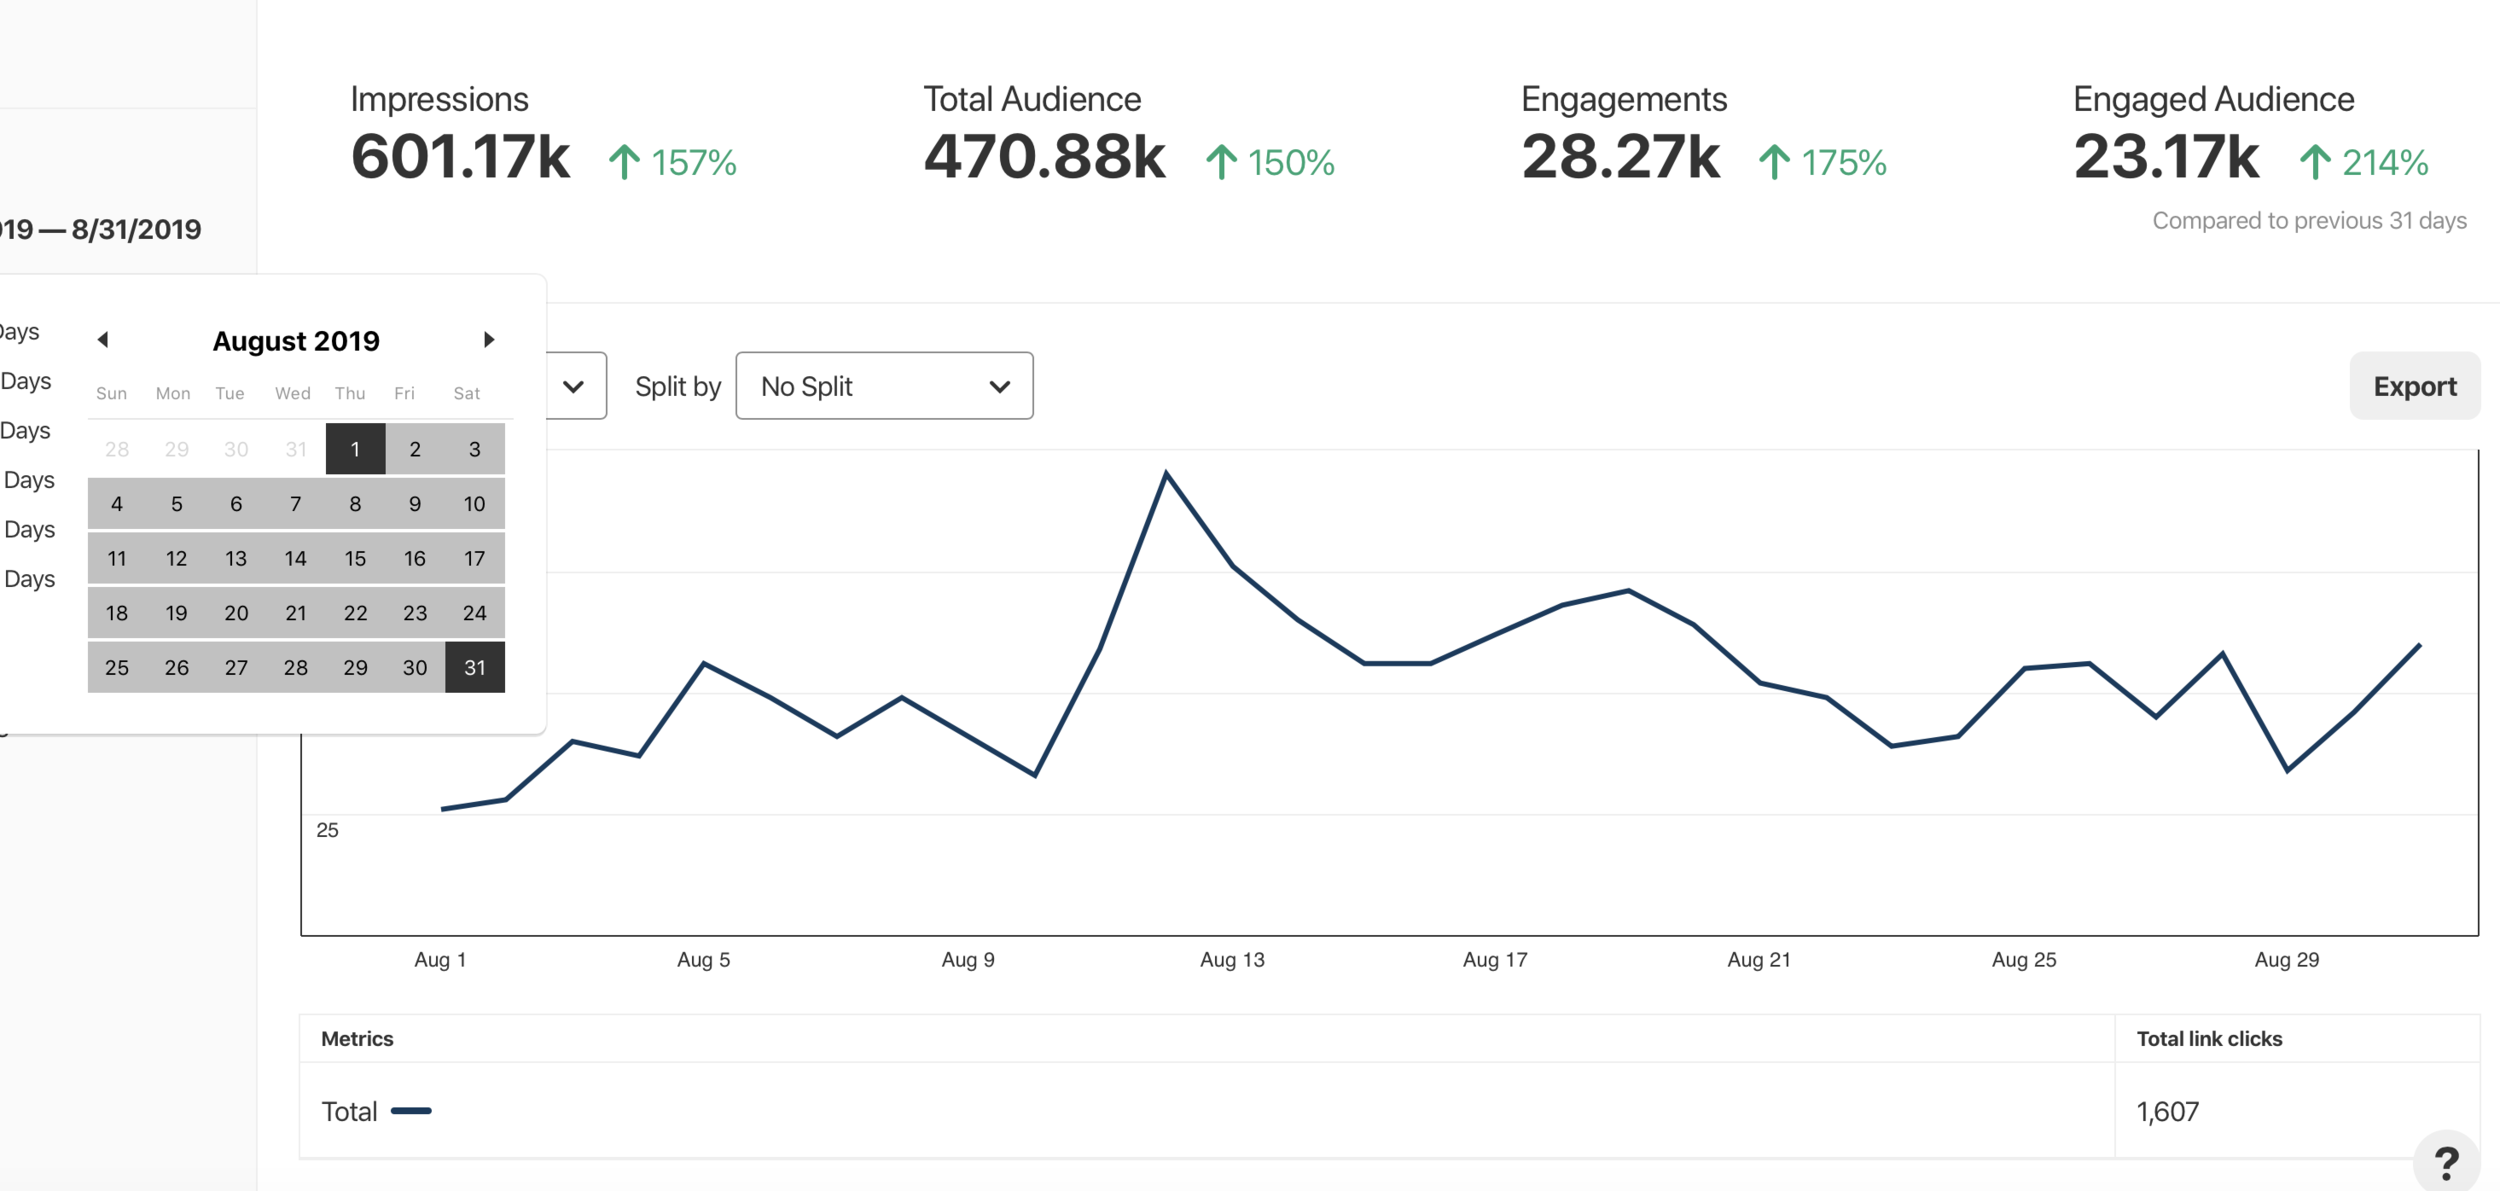 One month of analytics and 1,607 total link clicks